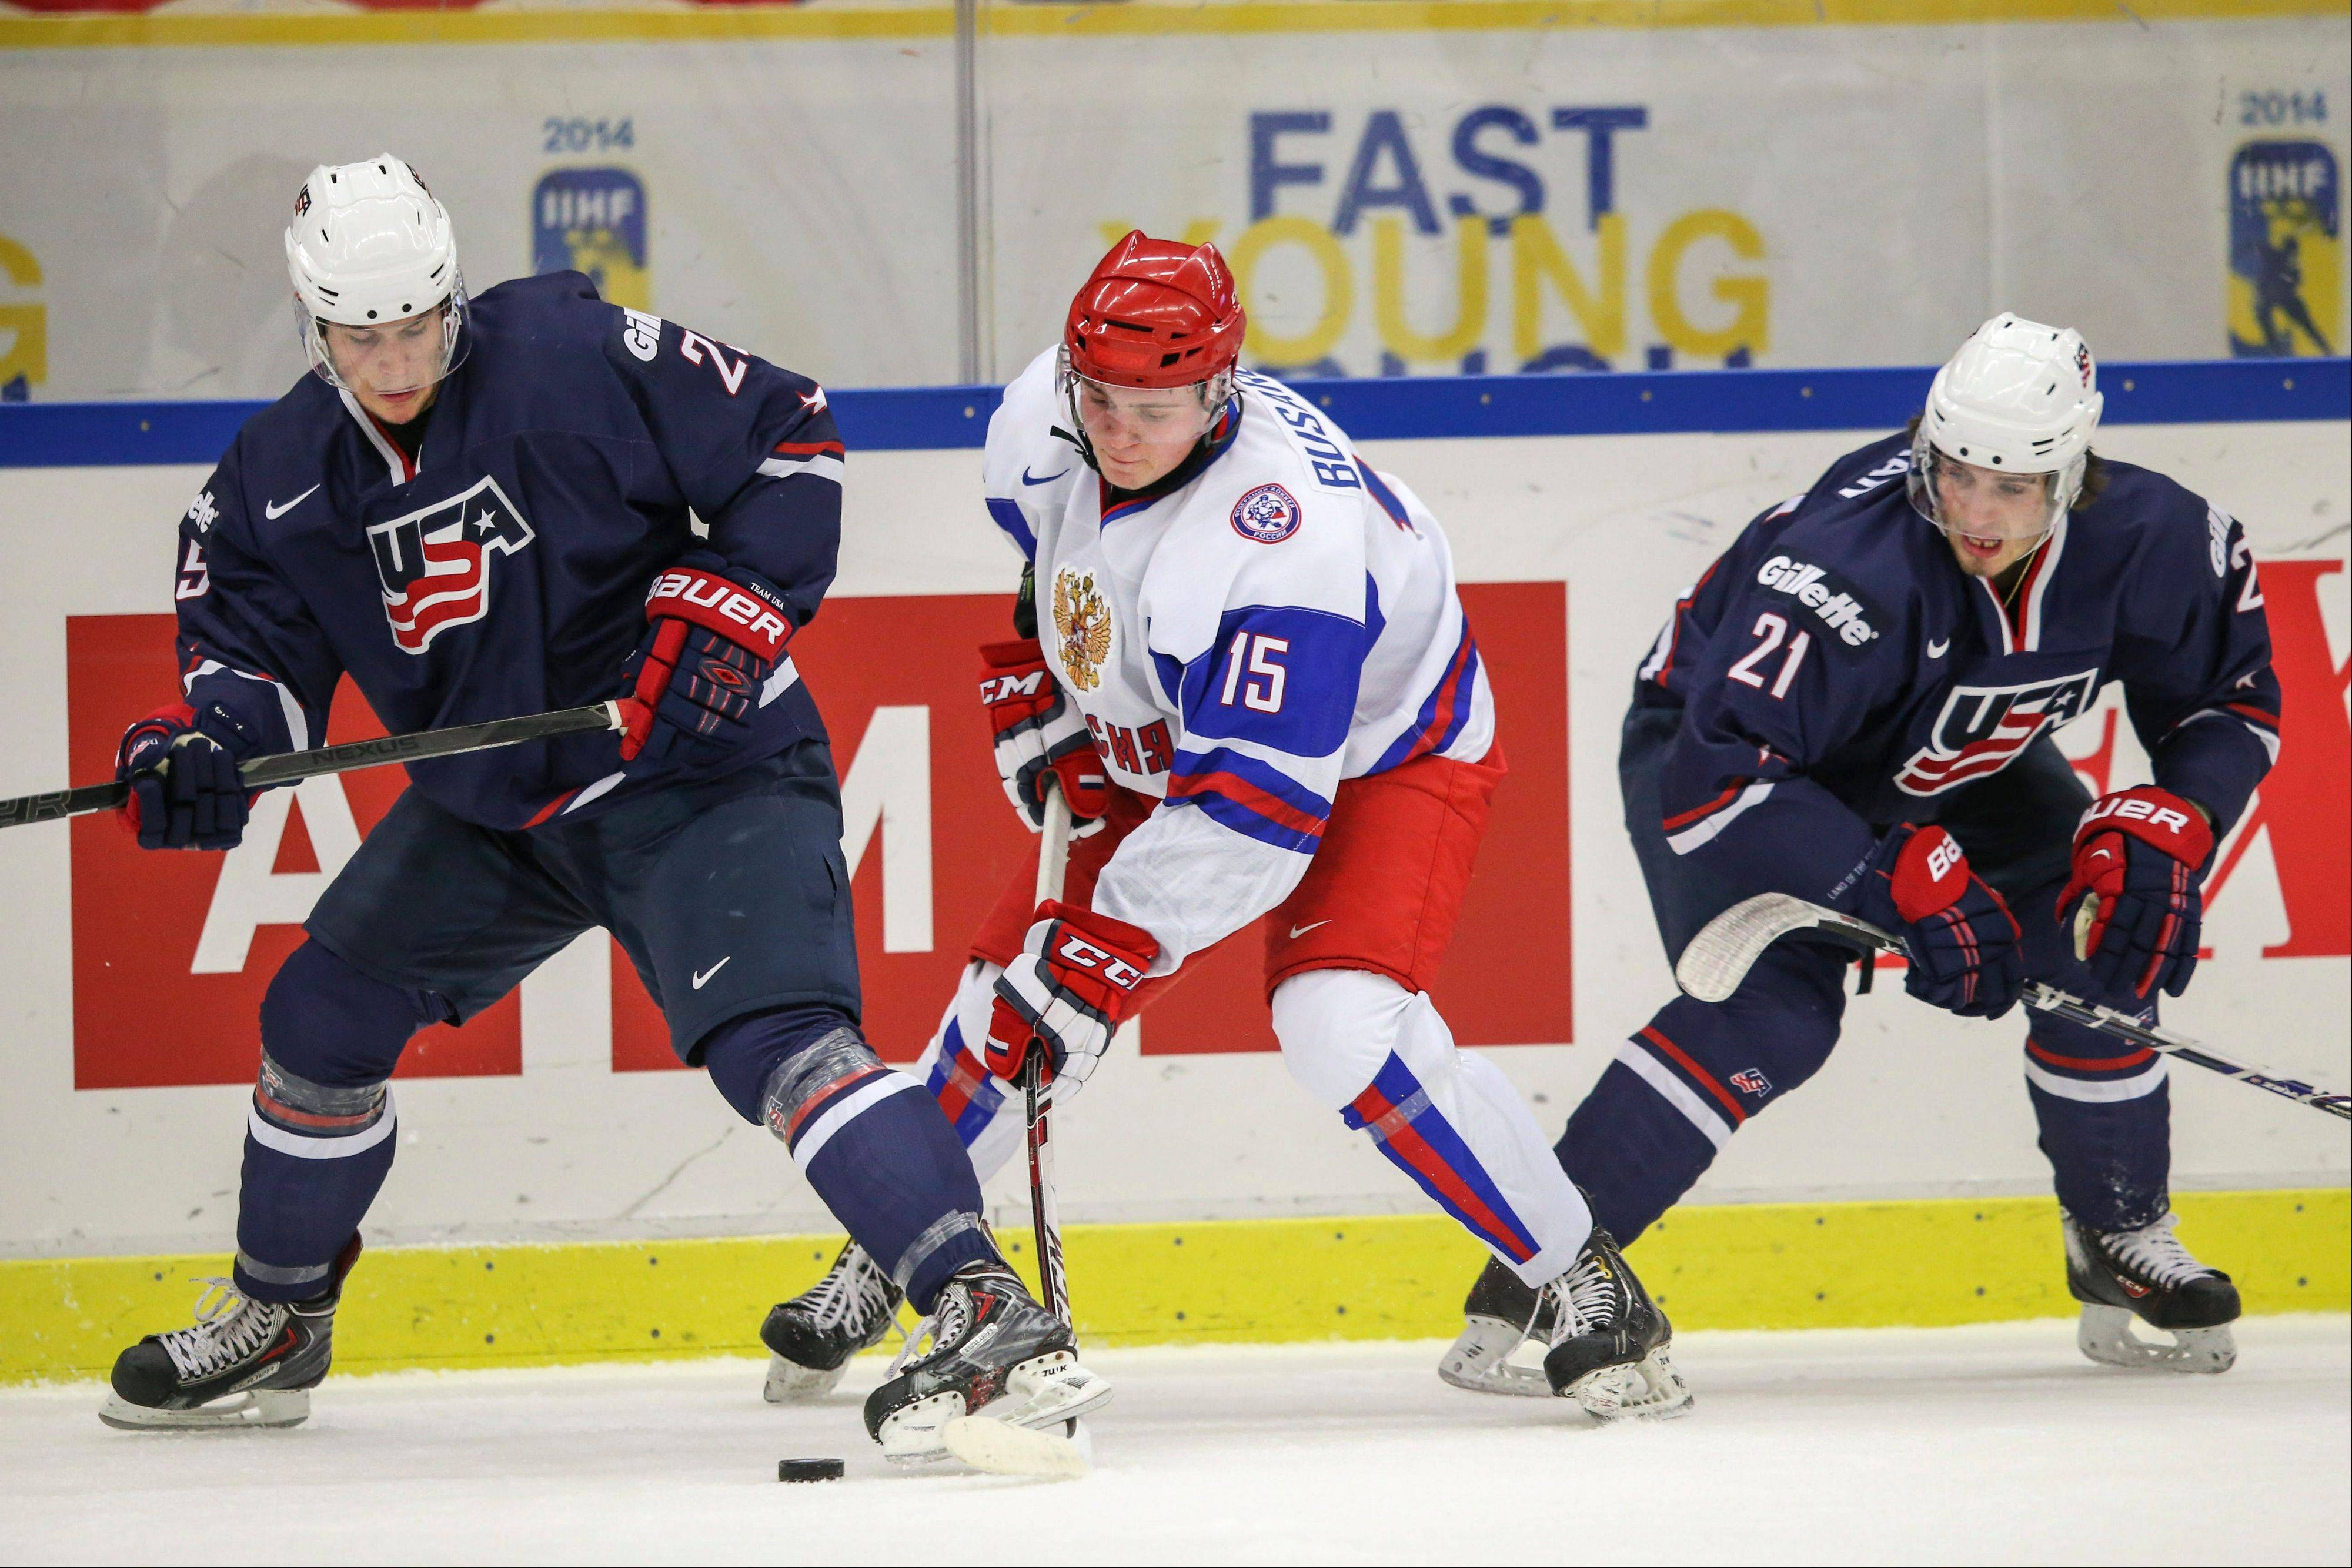 Russia's Georgi Busarov, center, vies with Quentin Shore, left, and Ryan Hartman, right, of the USA during their World Junior Hockey Championships quarter final in Malmo, Sweden on Thursday. West Dundee and Blackhawks prospect Hartman scored, but the U.S. still fell to Russia 5-3.